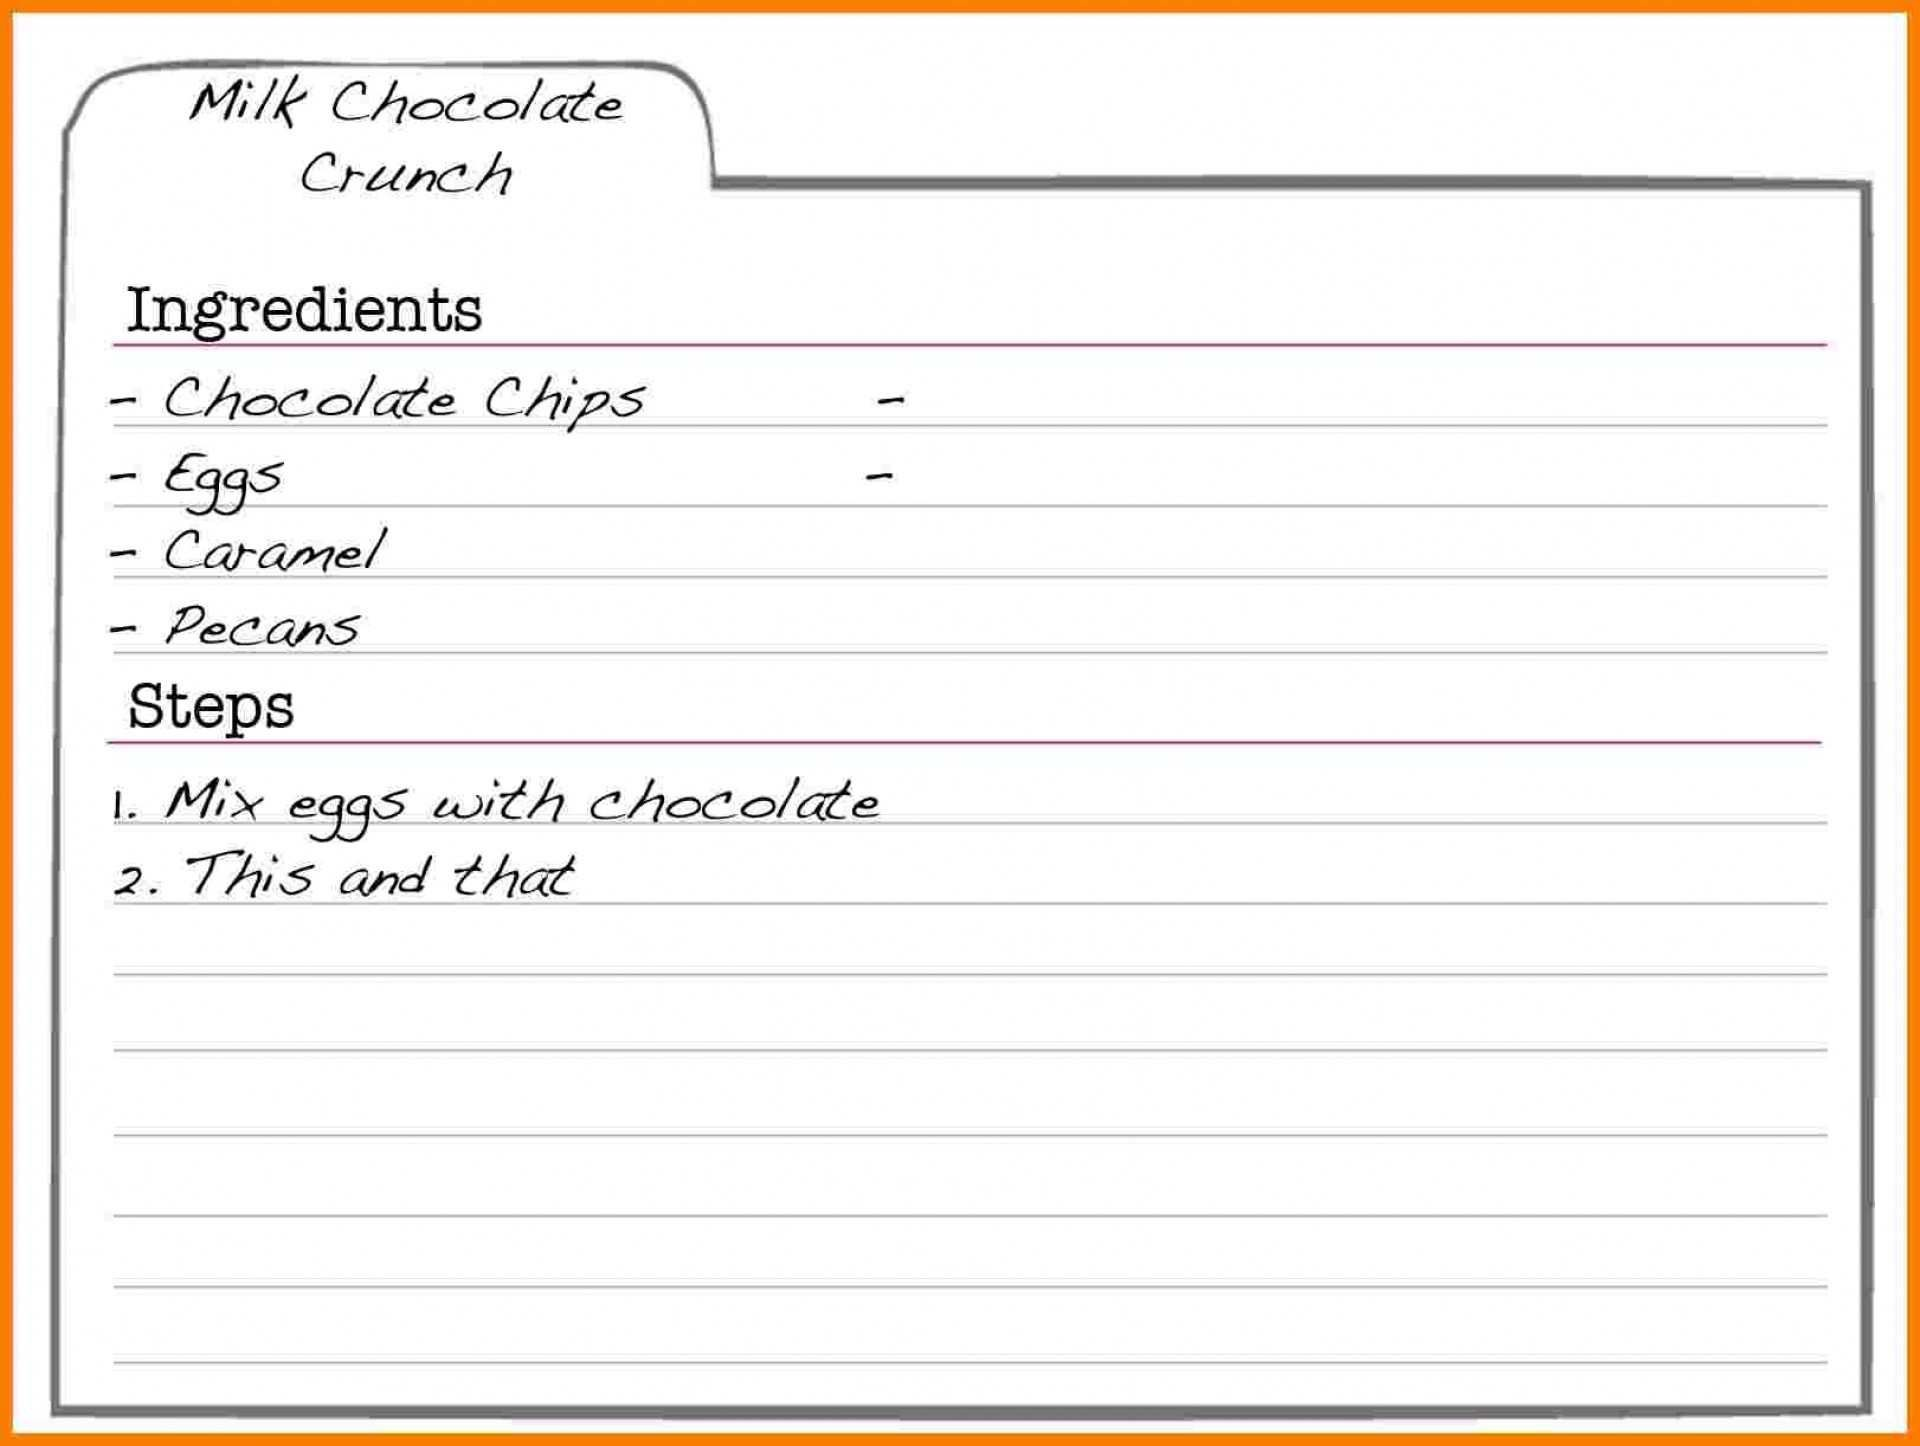 000 Singular M Word Recipe Template Picture  Microsoft Card 2010 Full Page1920